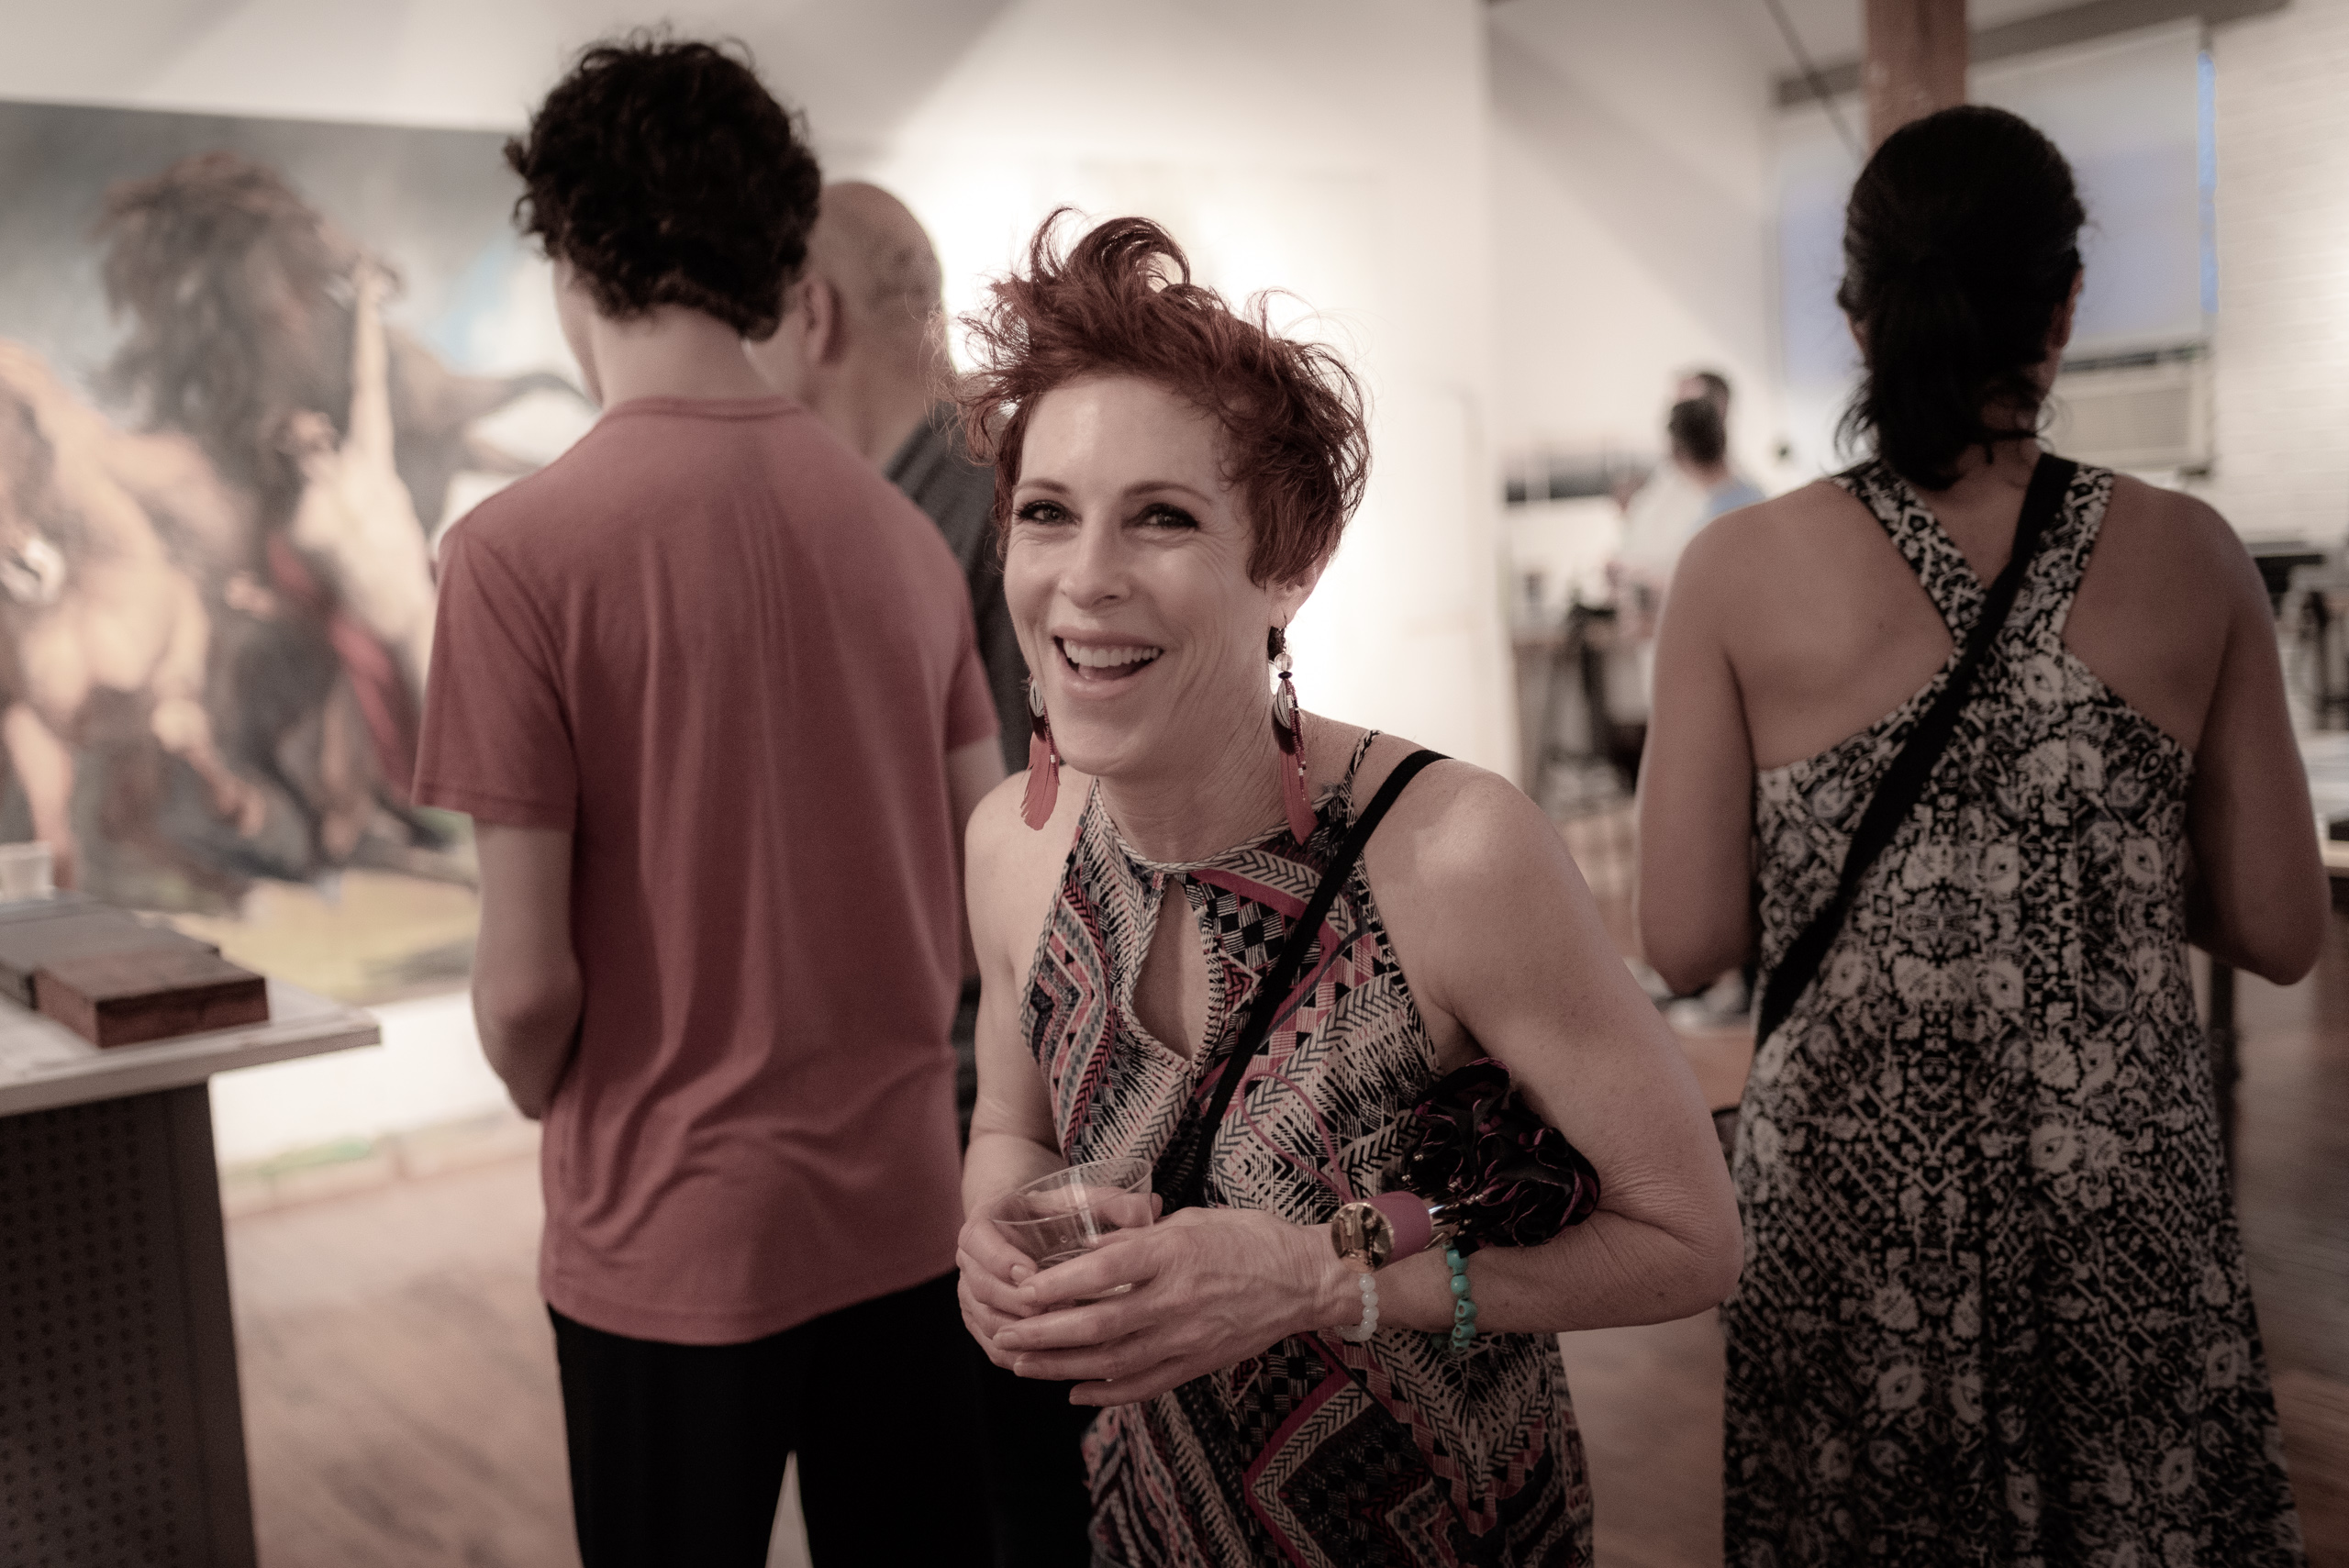 visitors to Lawrence Fodor's Open Studio enjoy the art, the drinks, and the party